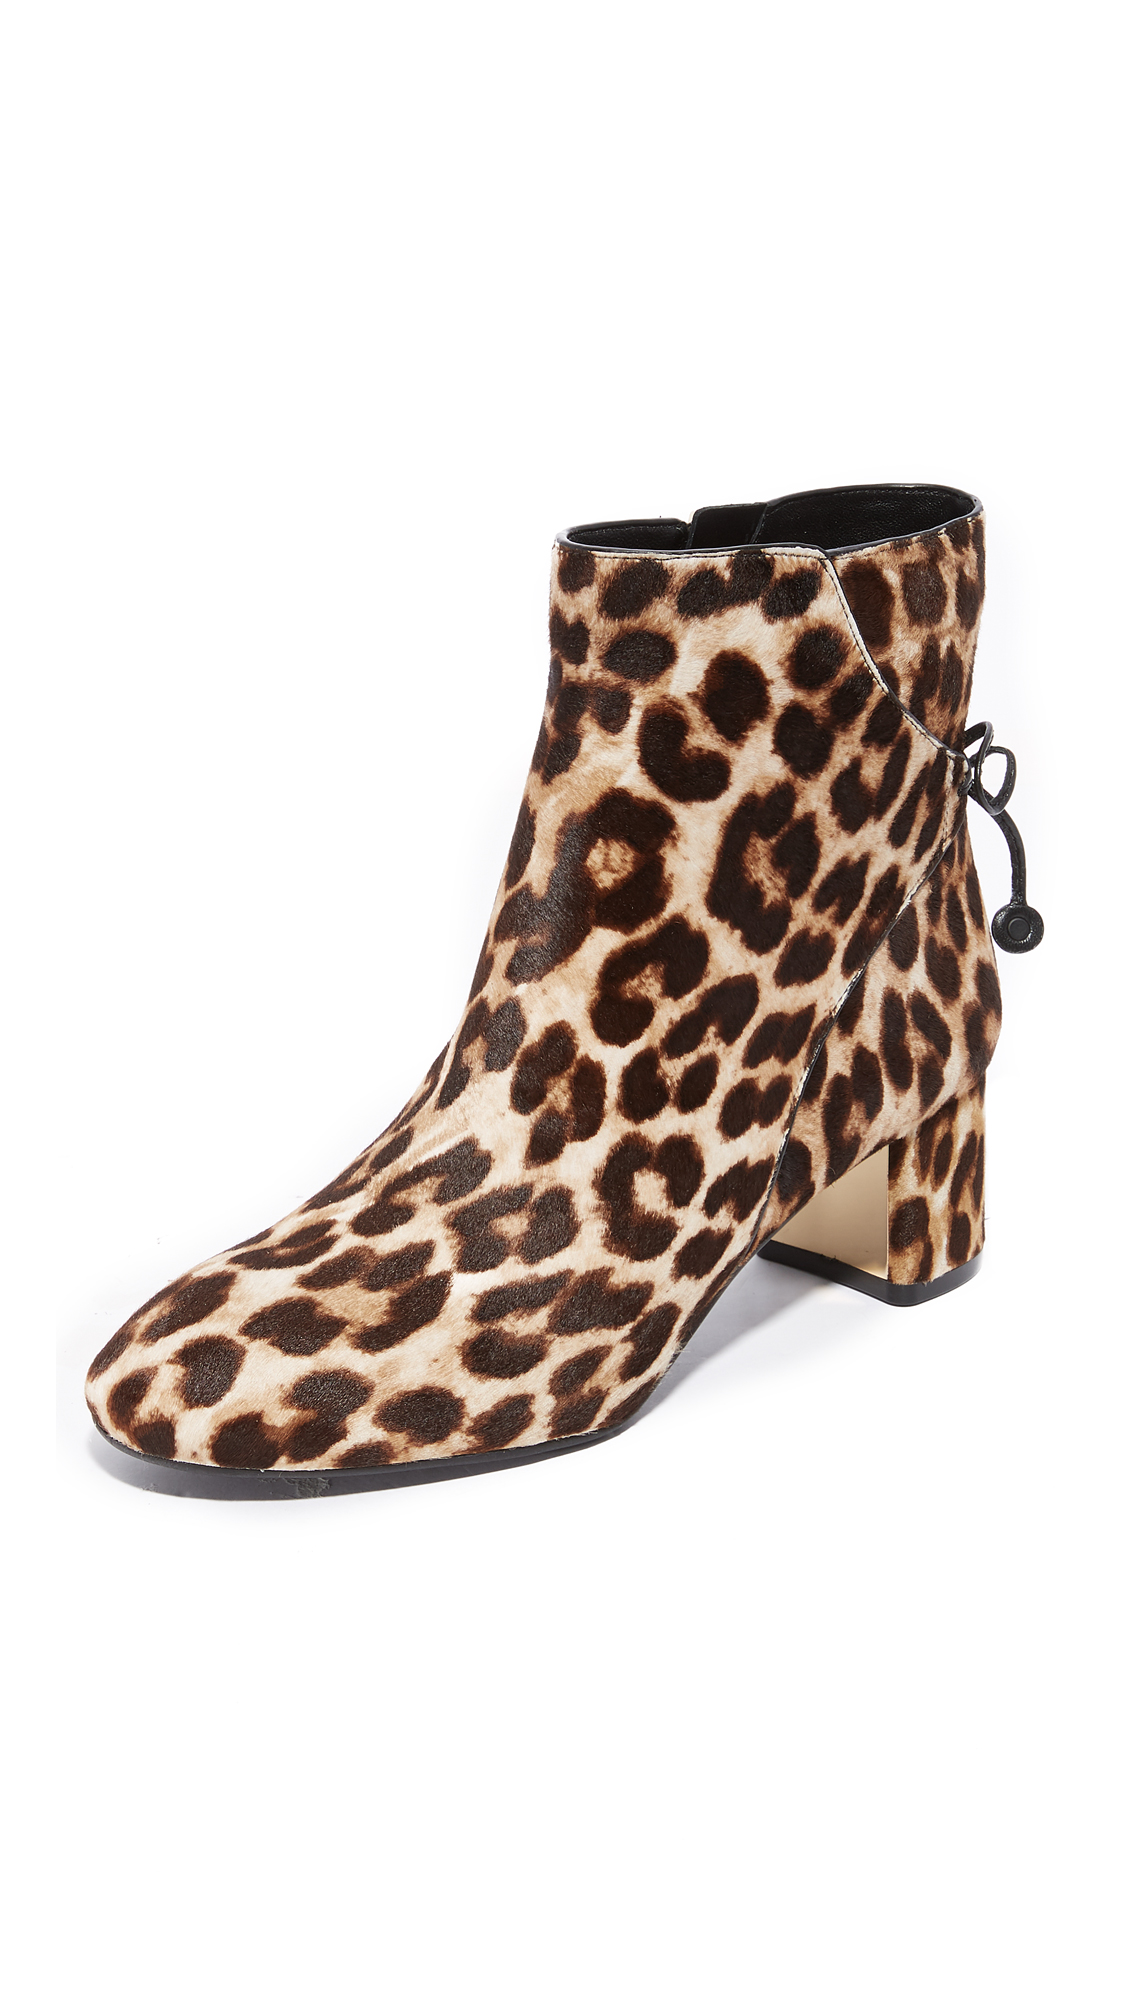 Tory Burch Laila 50mm Booties - Leopard